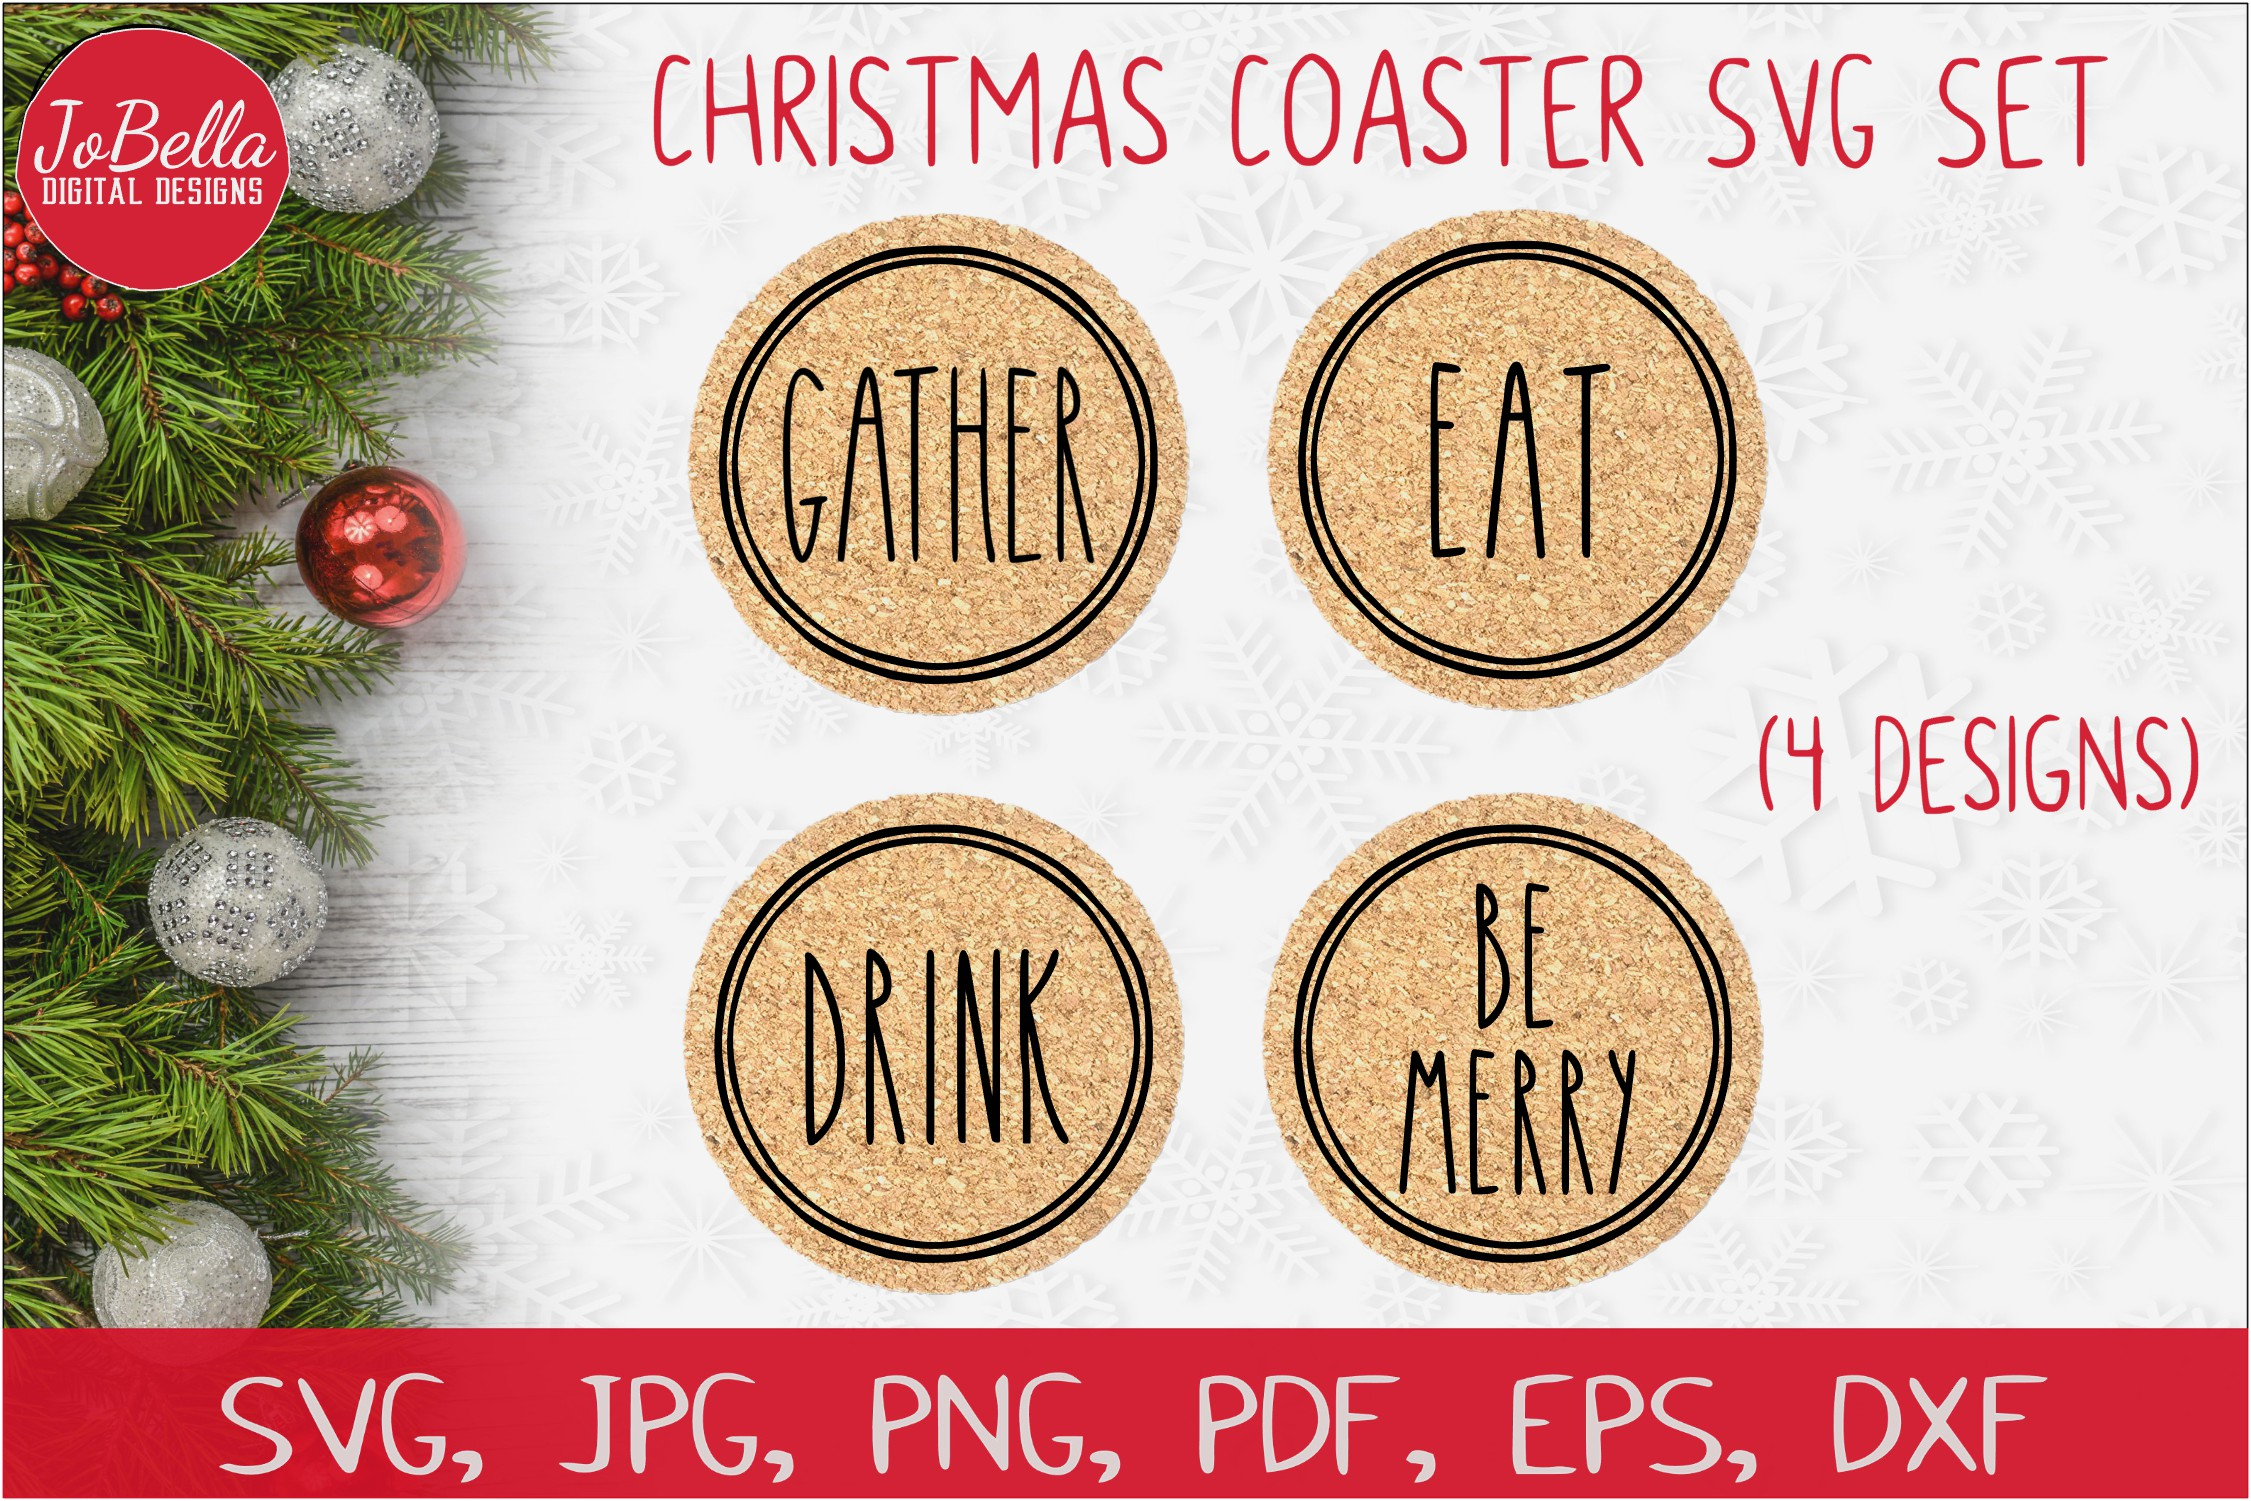 Download Free Christmas Coaster Graphic By Jobella Digital Designs Creative for Cricut Explore, Silhouette and other cutting machines.